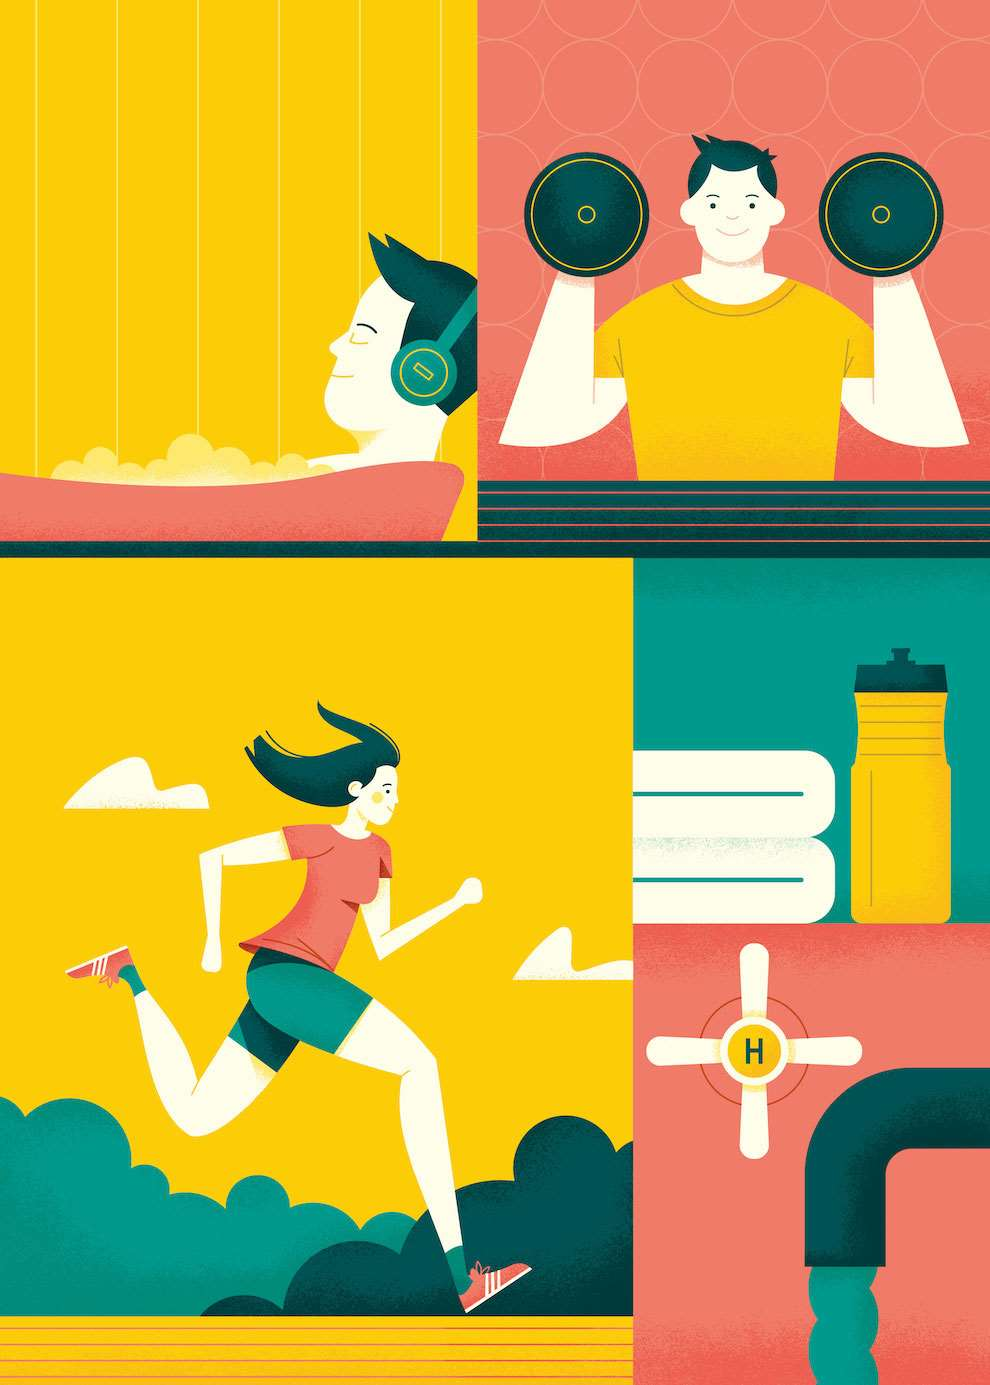 Parko Polo, Blog and graphic illustration